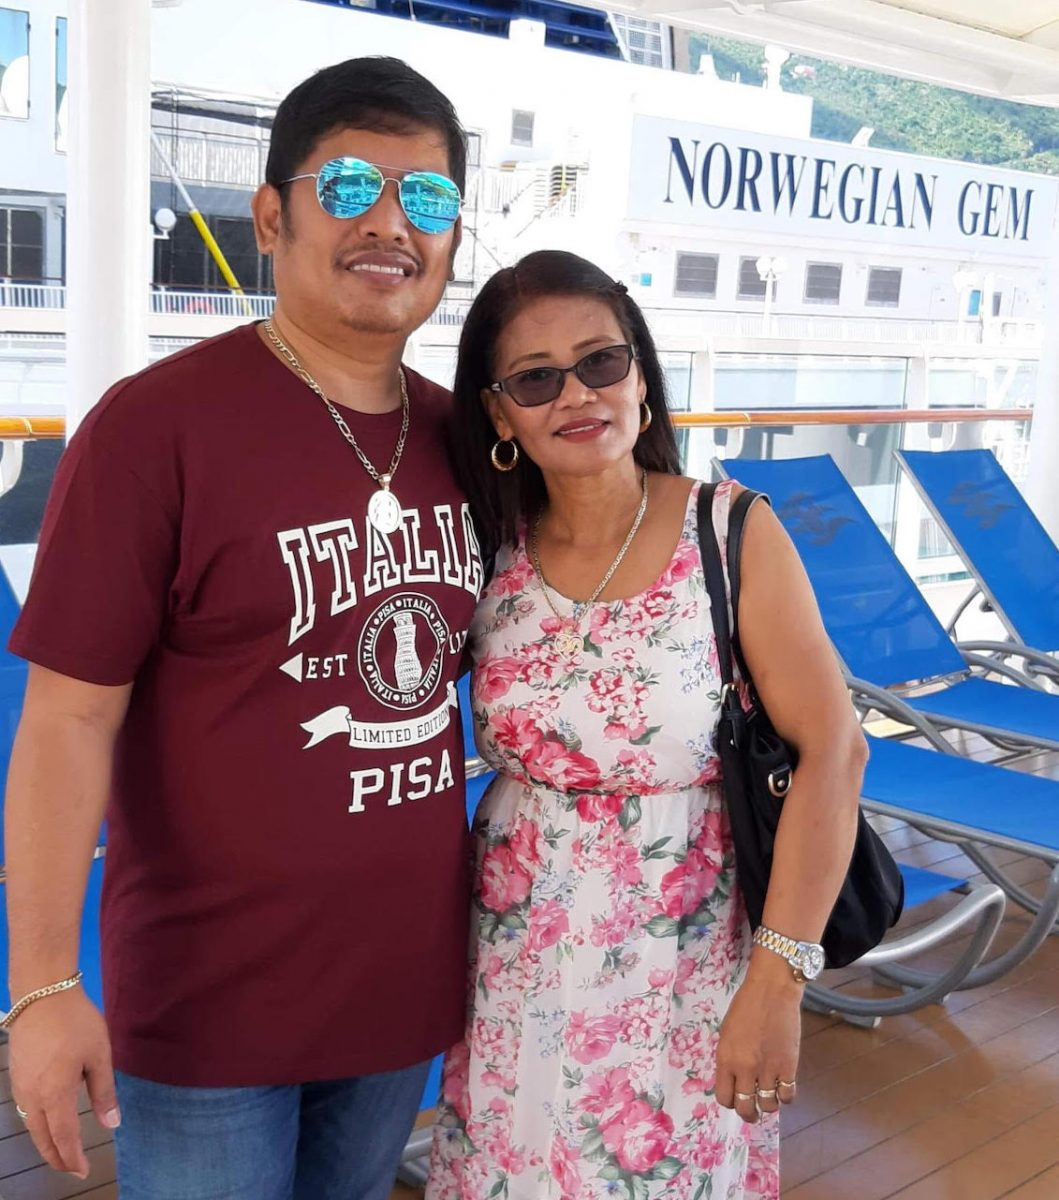 Vinuyas on cruise ship